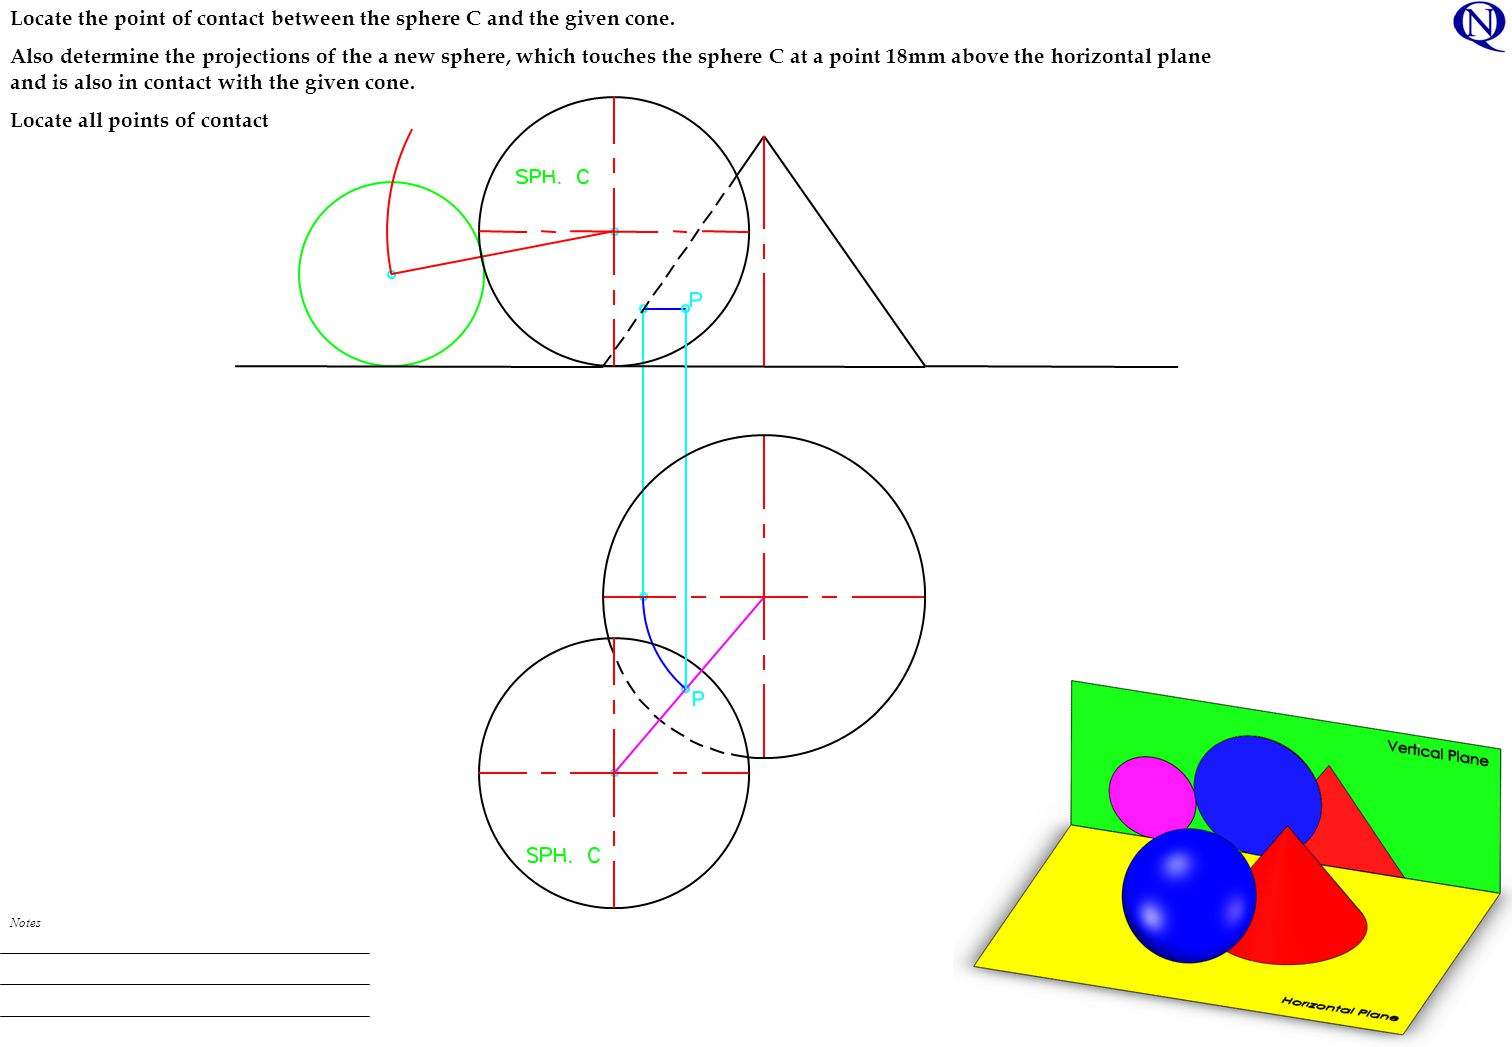 Notes Locate the point of contact between the sphere C and the given cone.